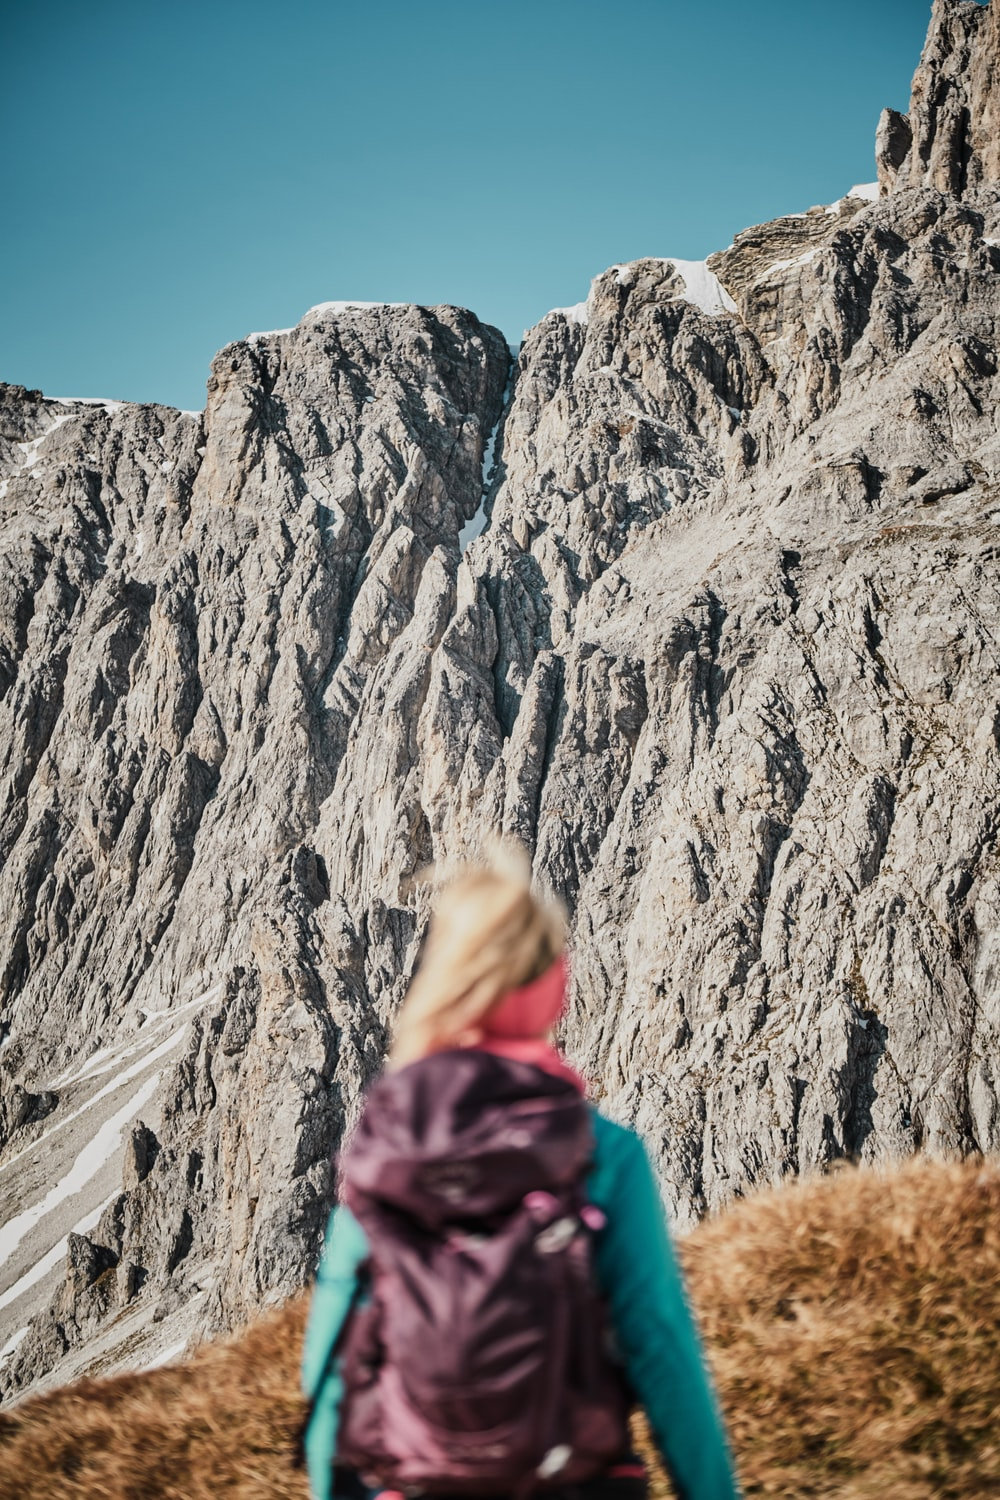 woman in purple jacket standing near rocky mountain during daytime